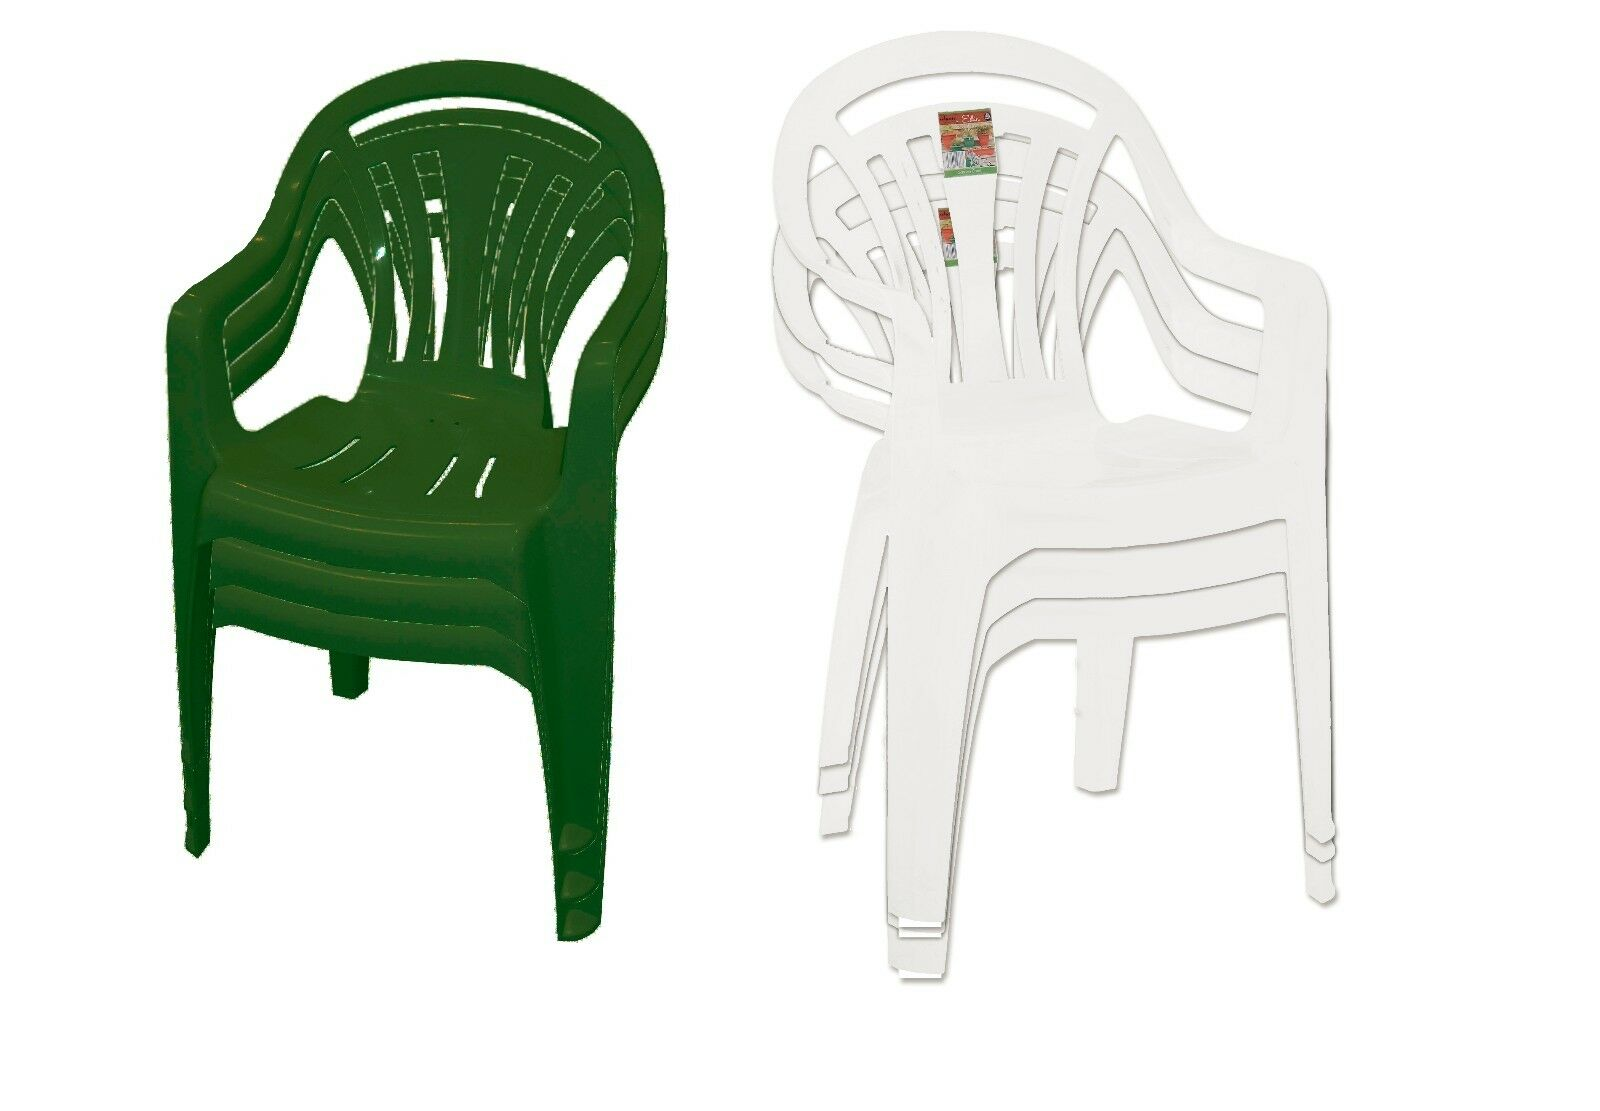 Plastic Stacking Chairs Patio Garden Outdoor Home Picnic Party Stackable Chair  sc 1 st  eBay & Plastic Stacking Chairs Patio Garden Outdoor Home Picnic Party ...